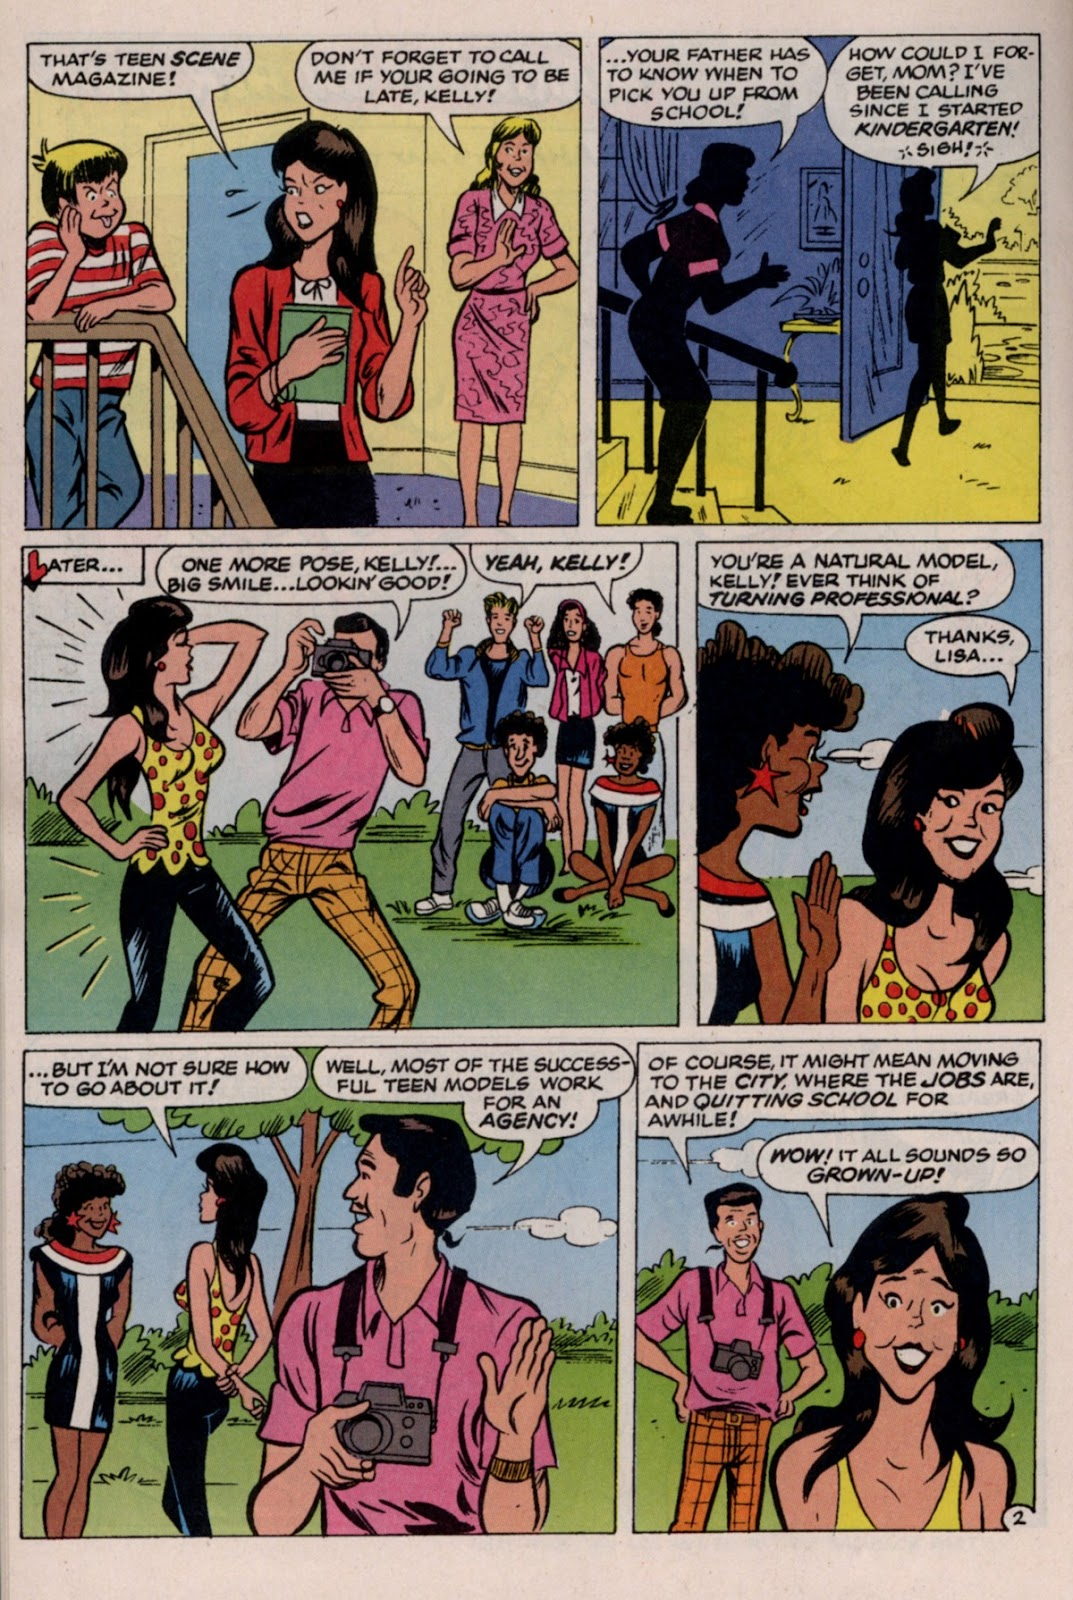 Read online Saved By The Bell comic -  Issue #2 - 23